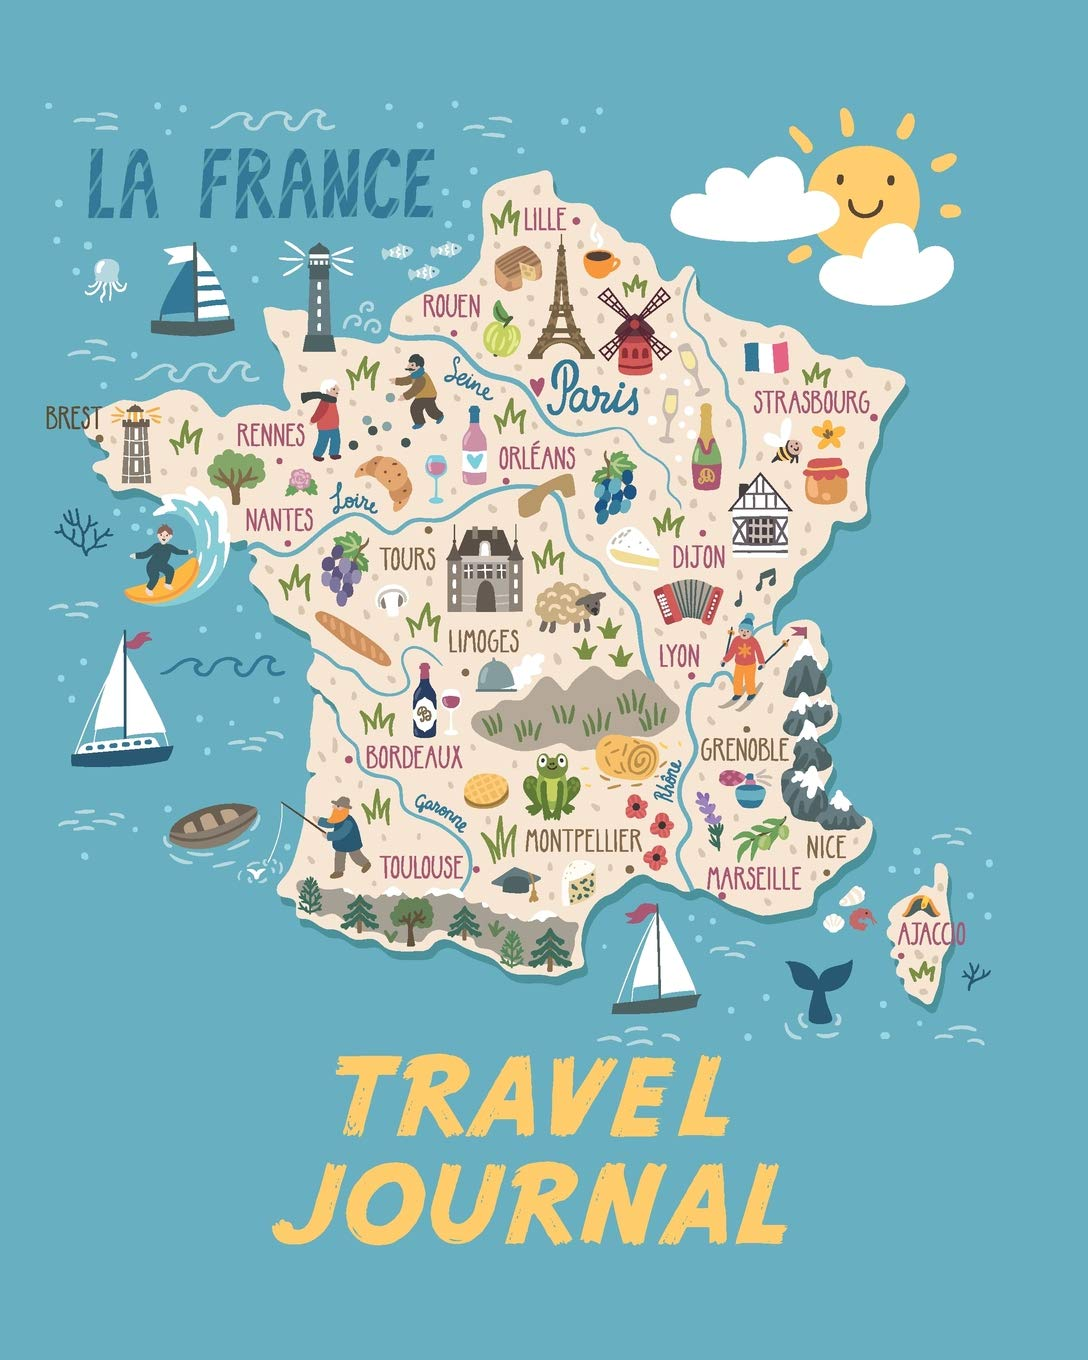 Rennes Map Of France.Travel Journal Map Of France Kid S Travel Journal Simple Fun